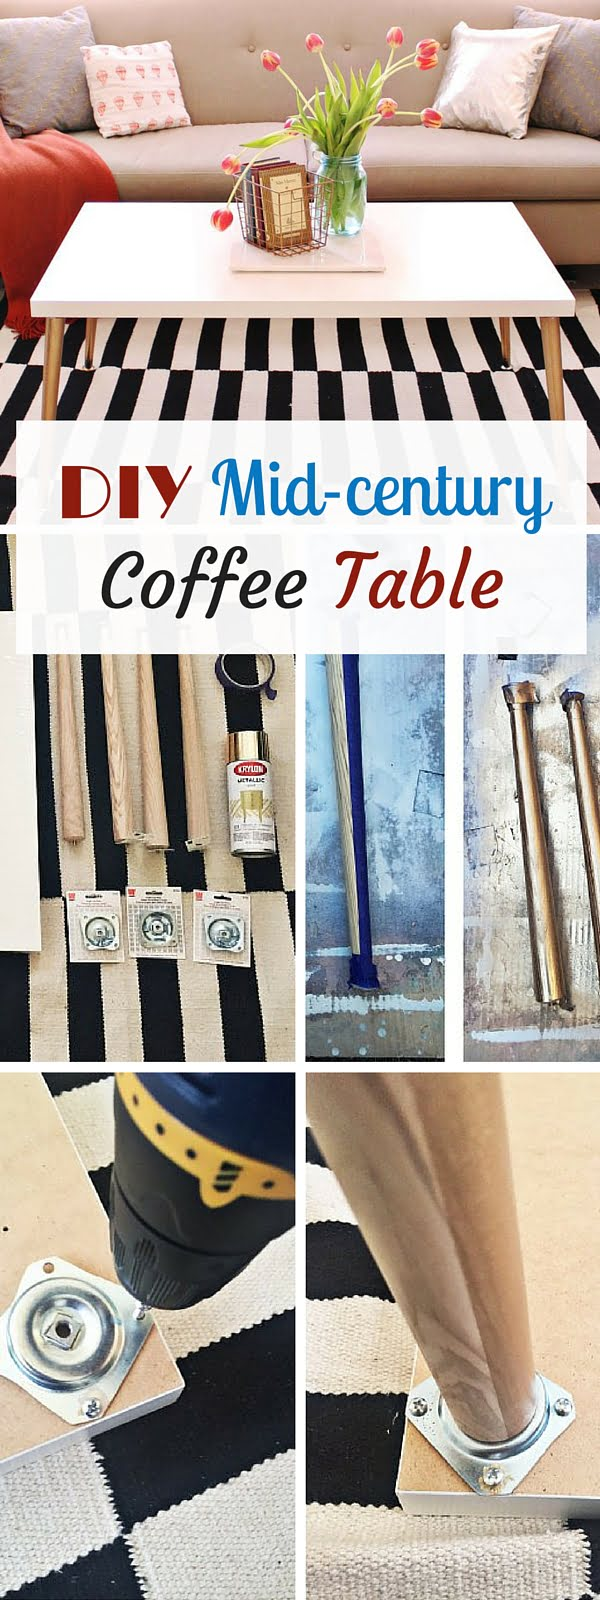 Check out the tutorial: #DIY Mid-century Coffee Table #crafts #homedecor